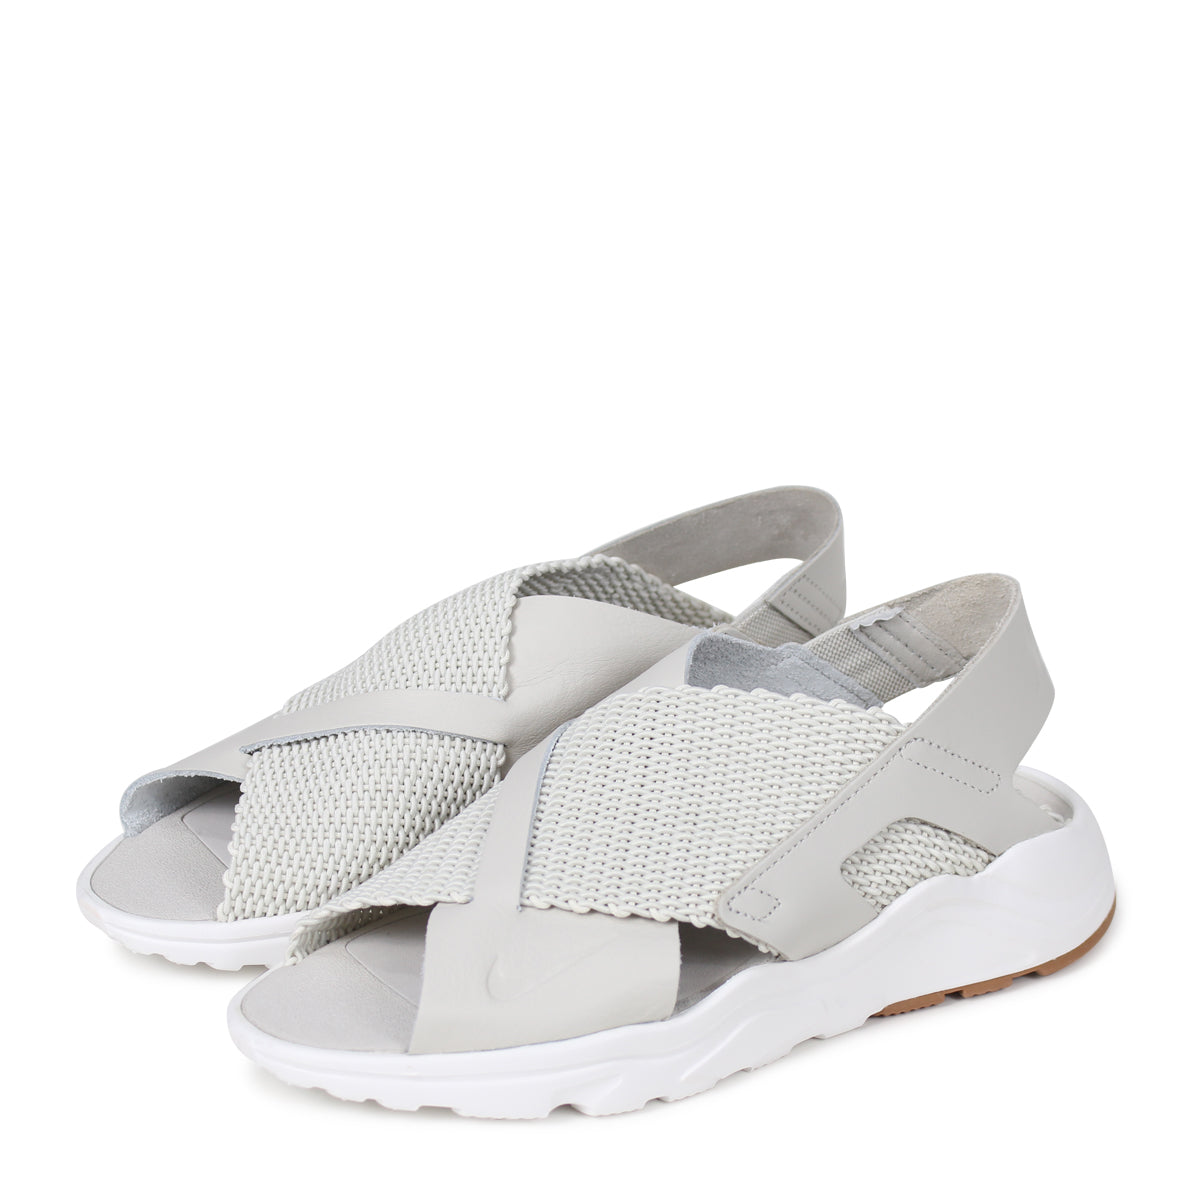 Nike Air Huarache Ultra Sandal (Women's)